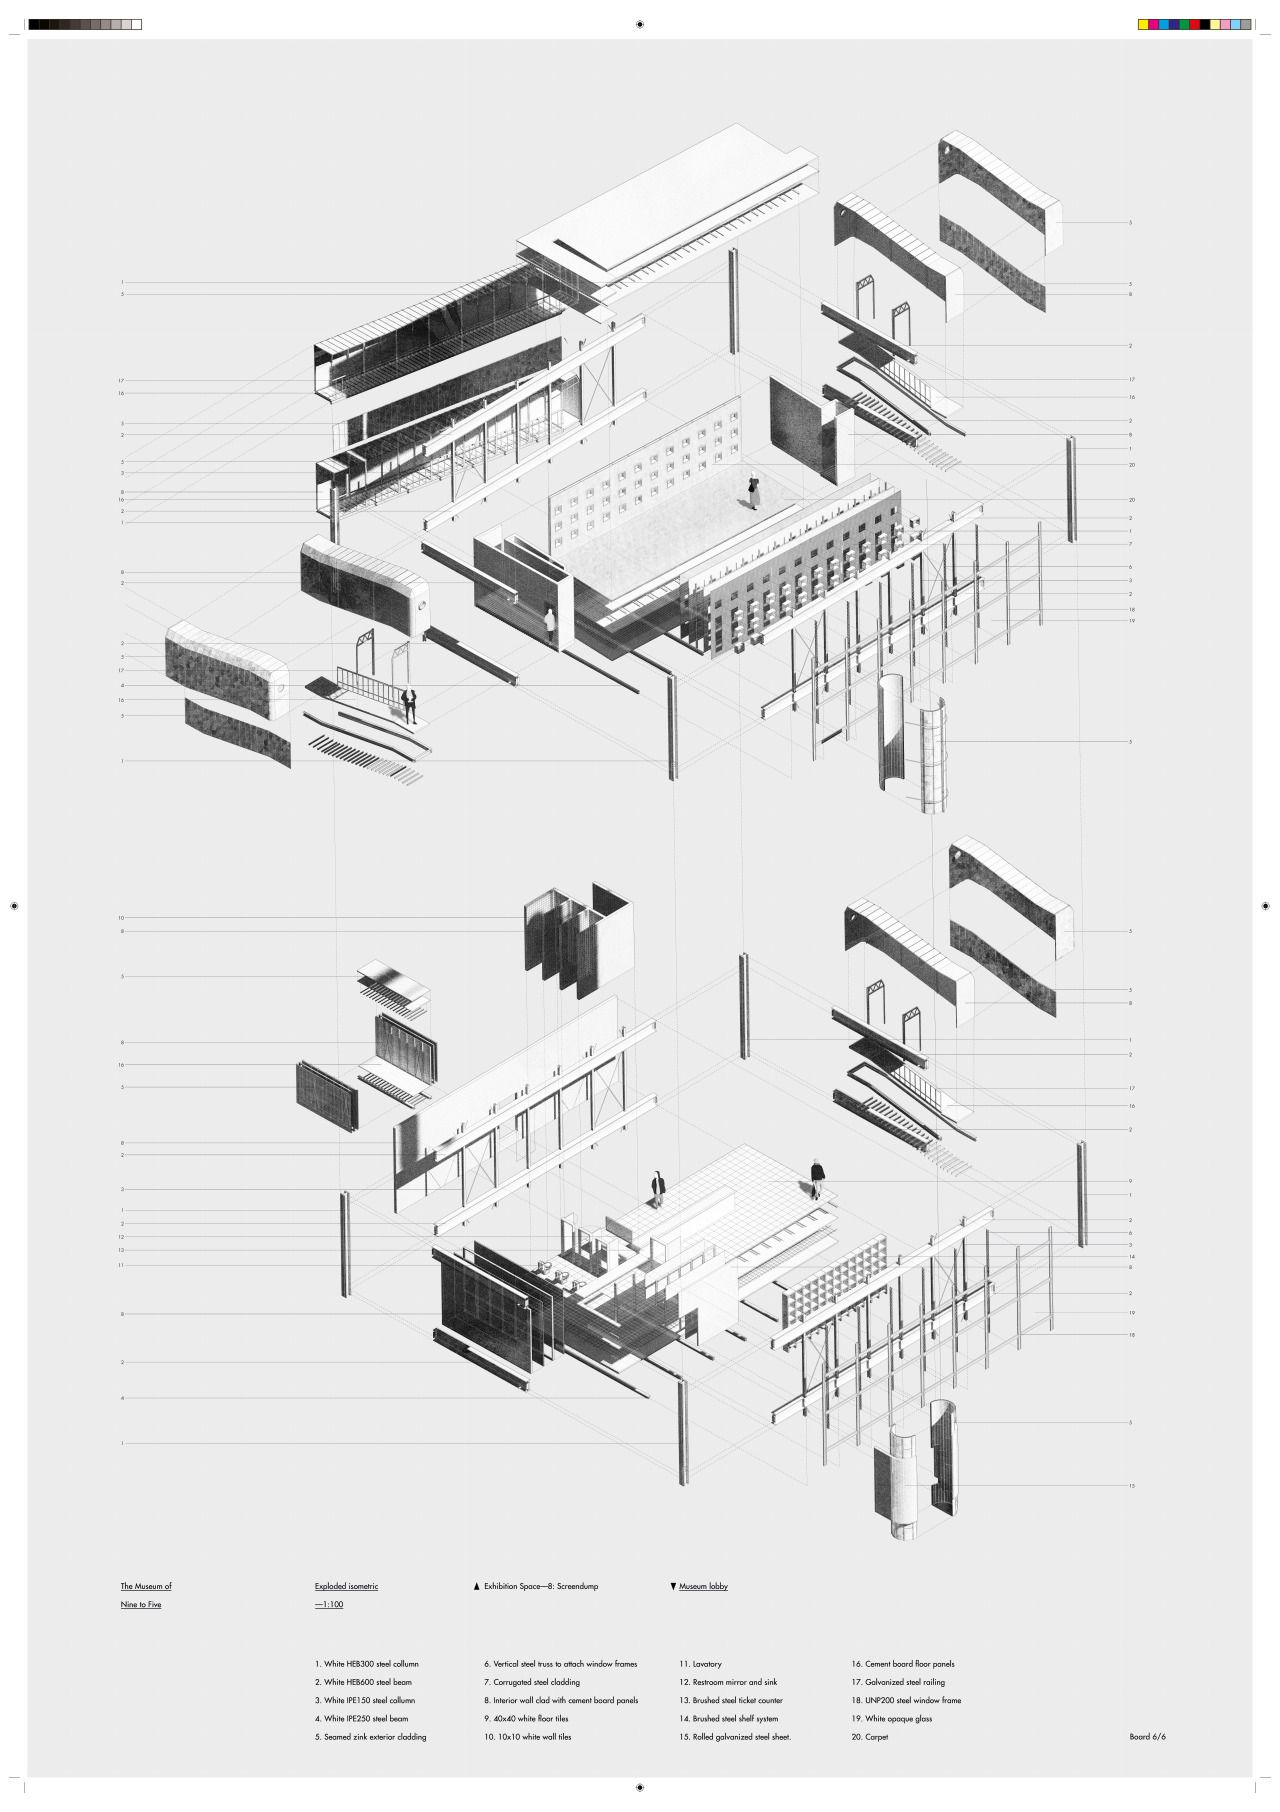 Presentation Board 7 7 Exploded Isometric